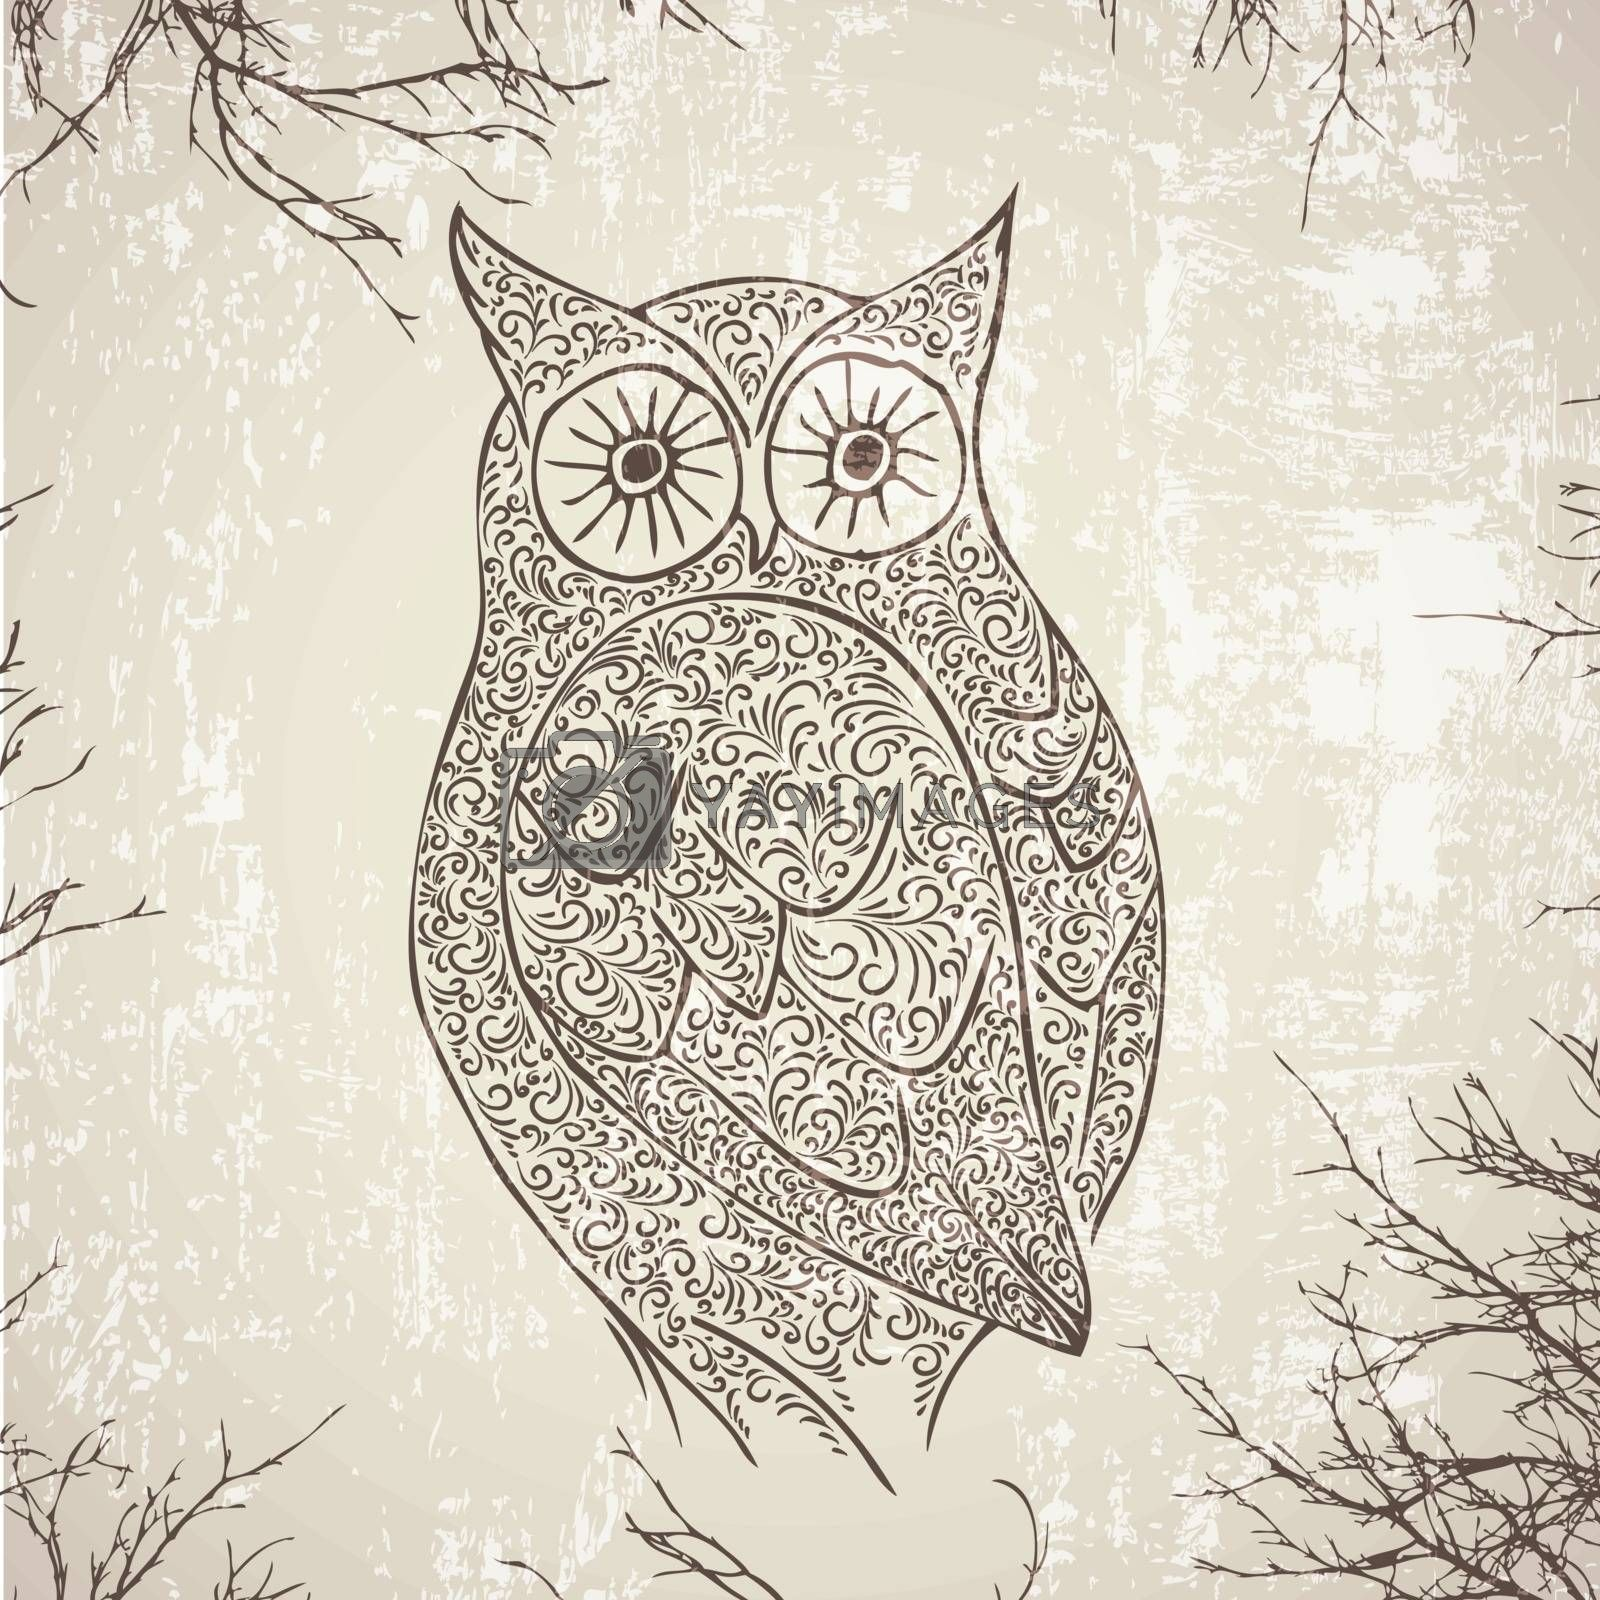 Abstract Vintage Owl Over Grunge Background